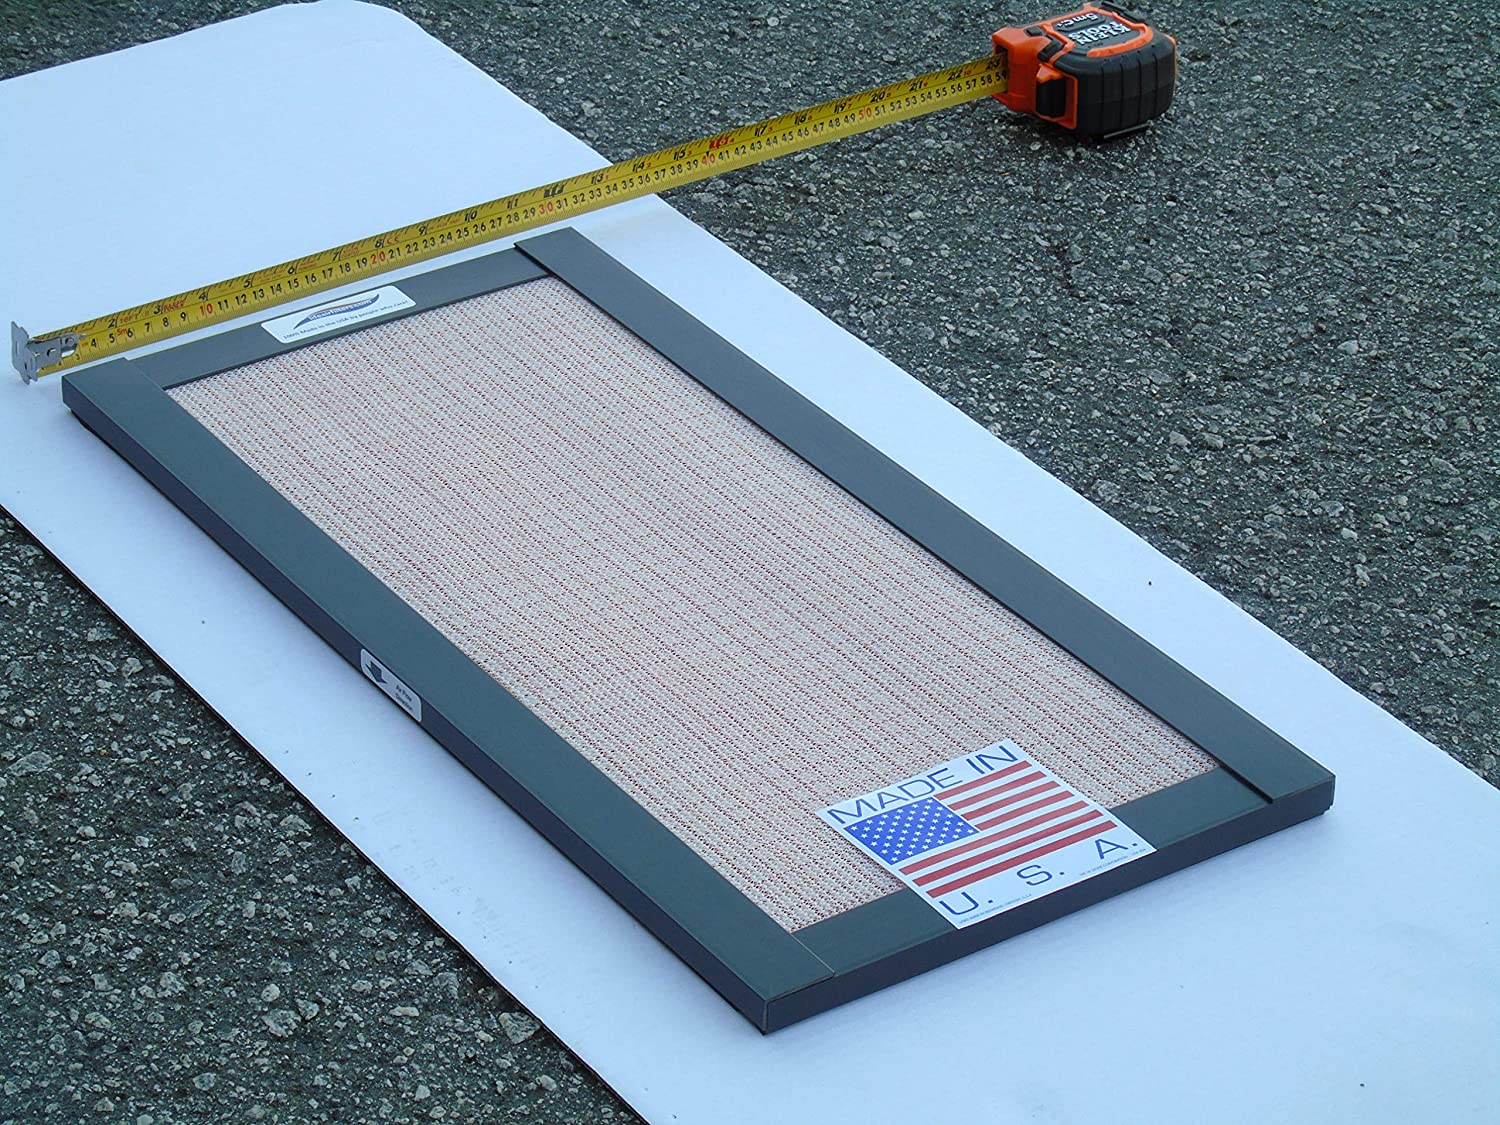 Permanent HVAC Air Filter 12 x 24 x 1-Inches Washable /& Reusable Electrostatic Filter Airflow Protection LifeAir Hypo-Allergenic Filter 100/% Made in The USA by People who Care.